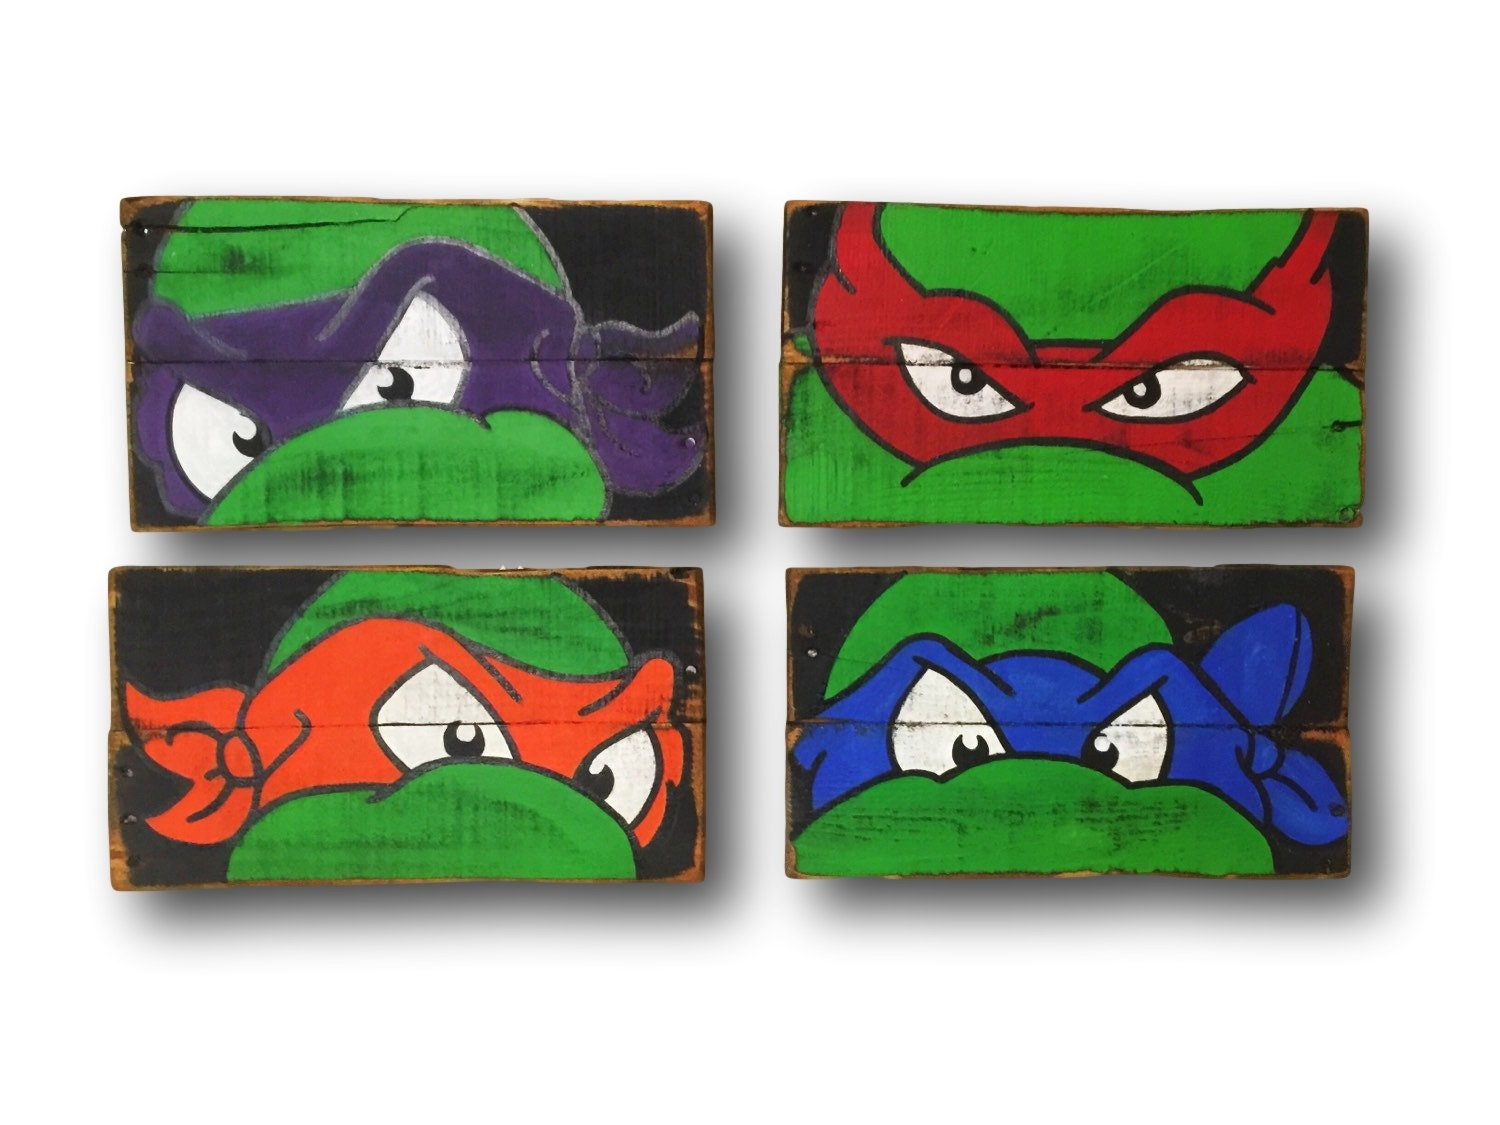 Teenage mutant ninja turtles wall art turtle room decor for Tmnt decorations